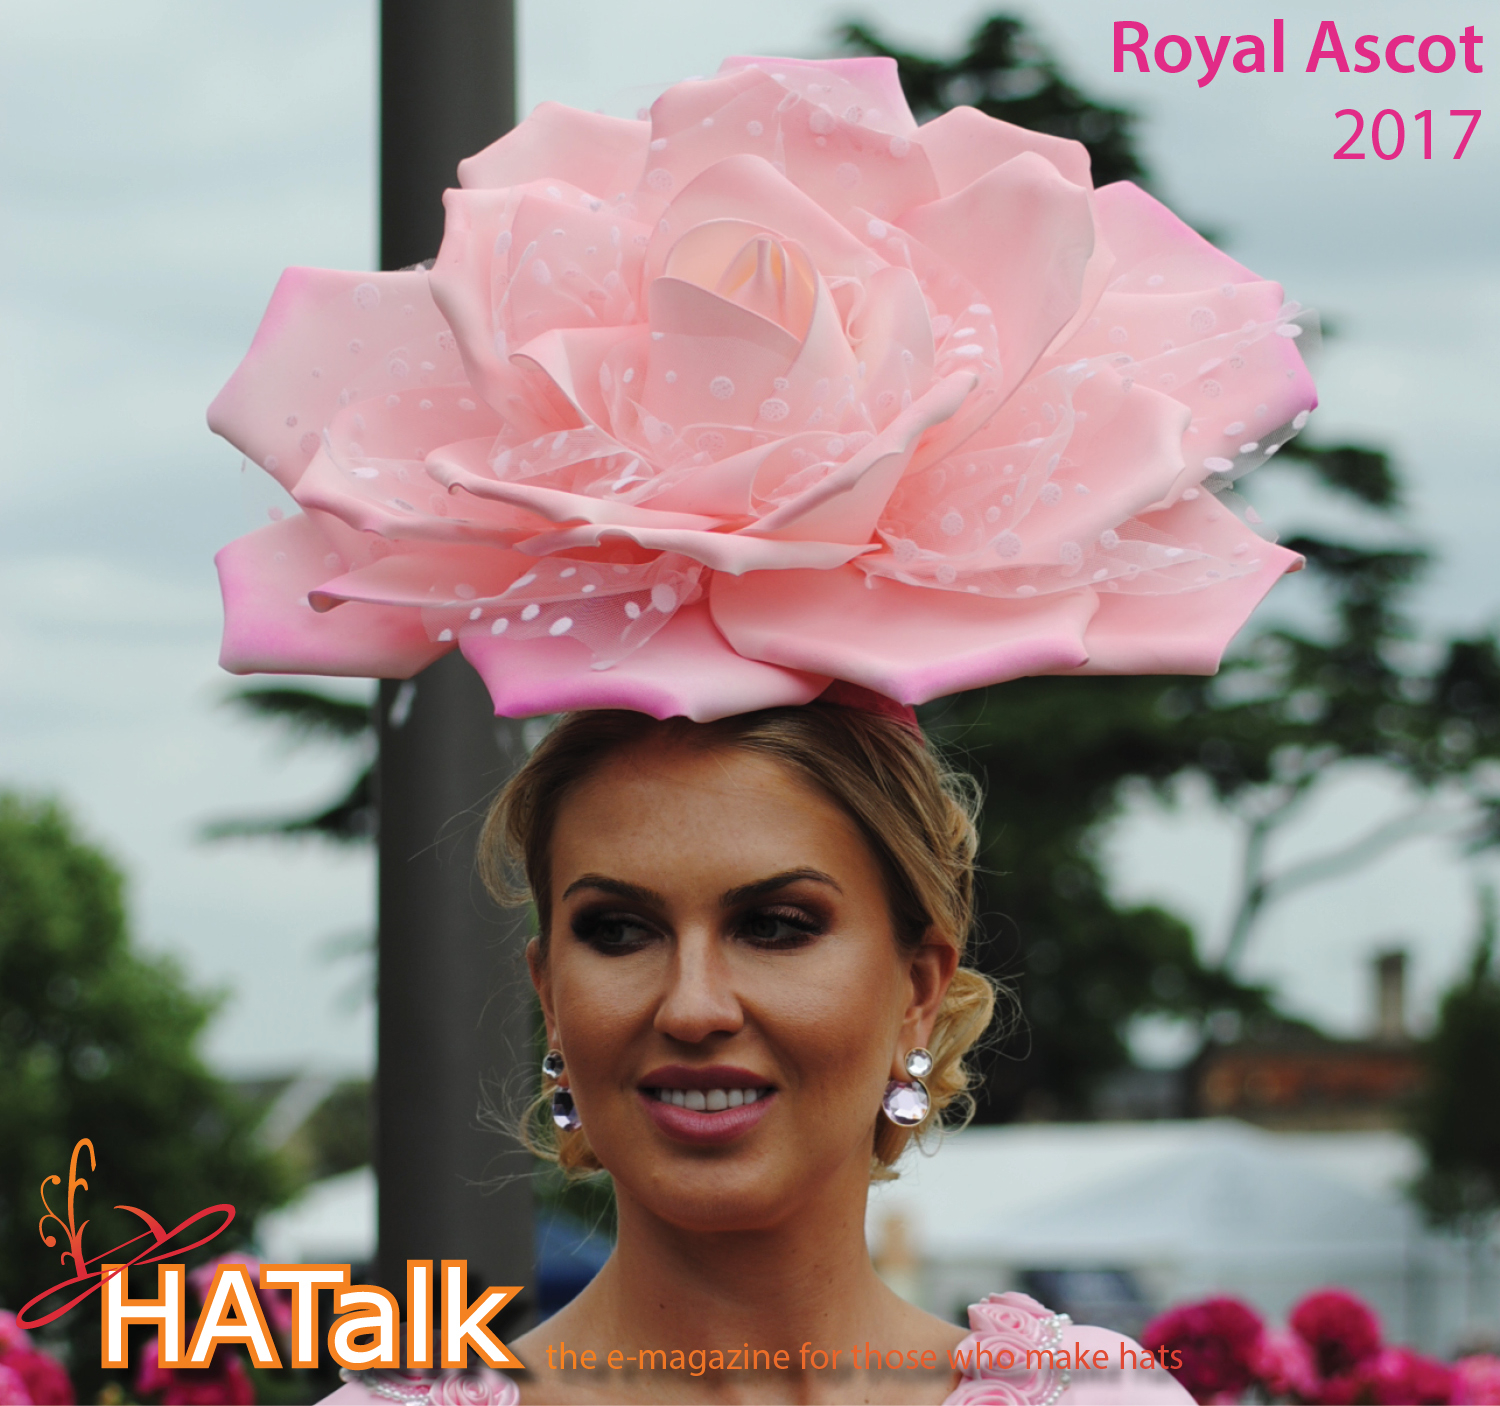 Royal Ascot 2017 HATalk Special Edition